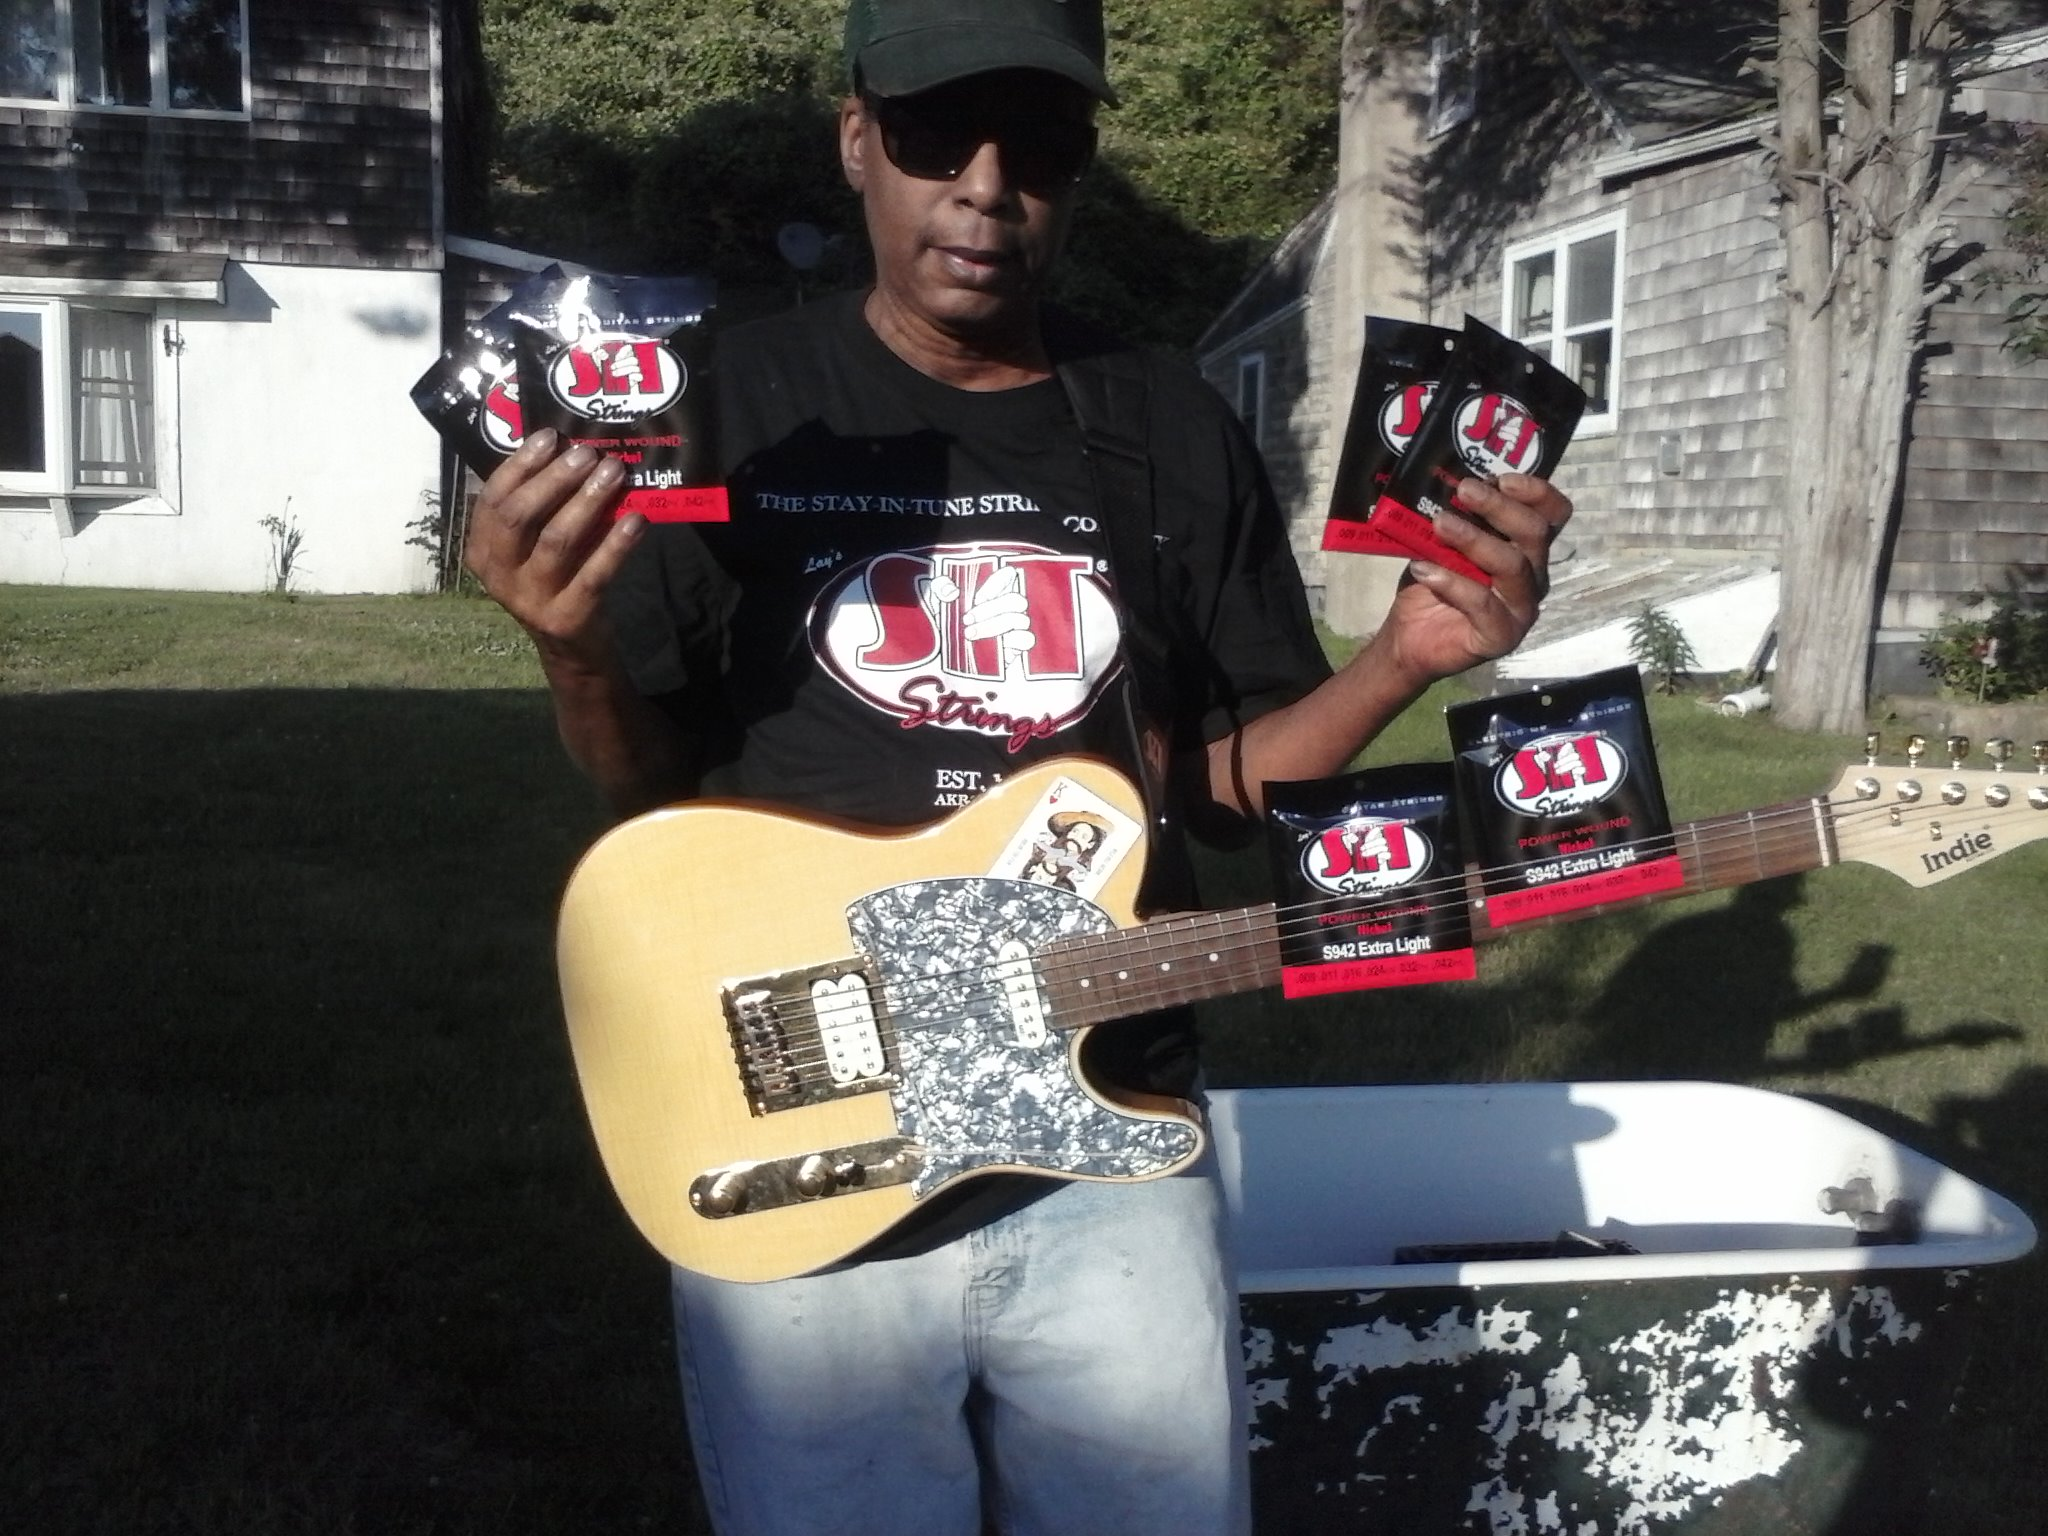 icepack endorsement sit strings